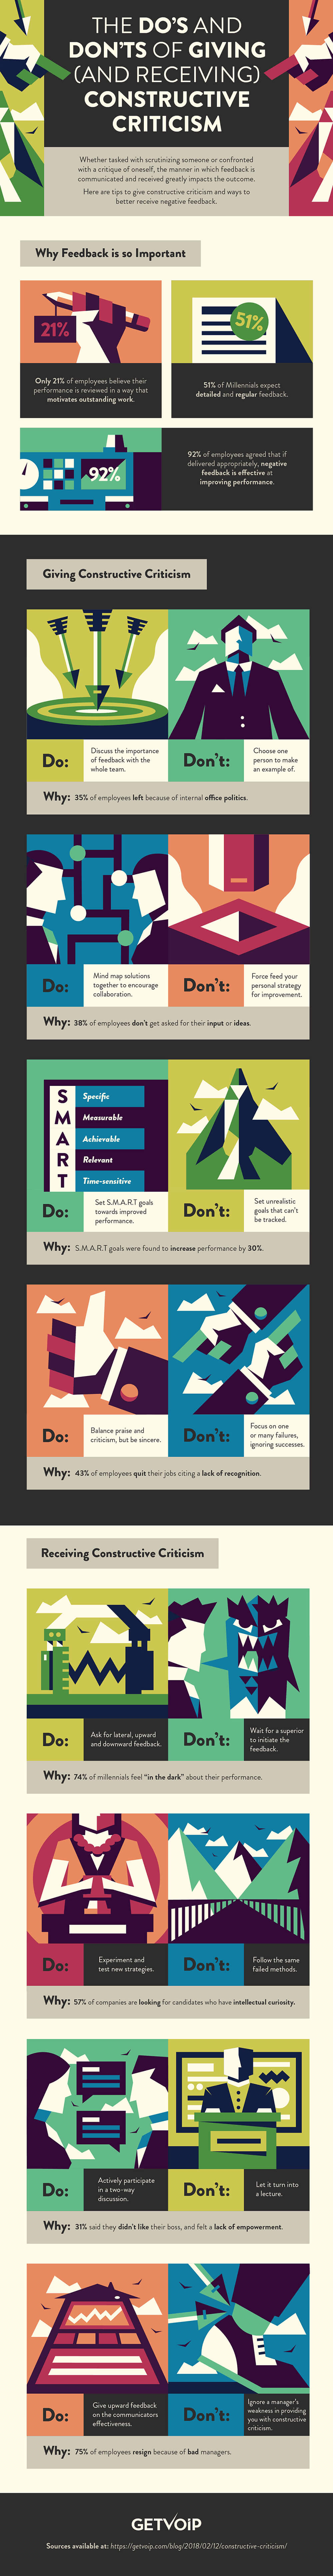 Infographic: The do's and don'ts of giving (and receiving) constructive criticism